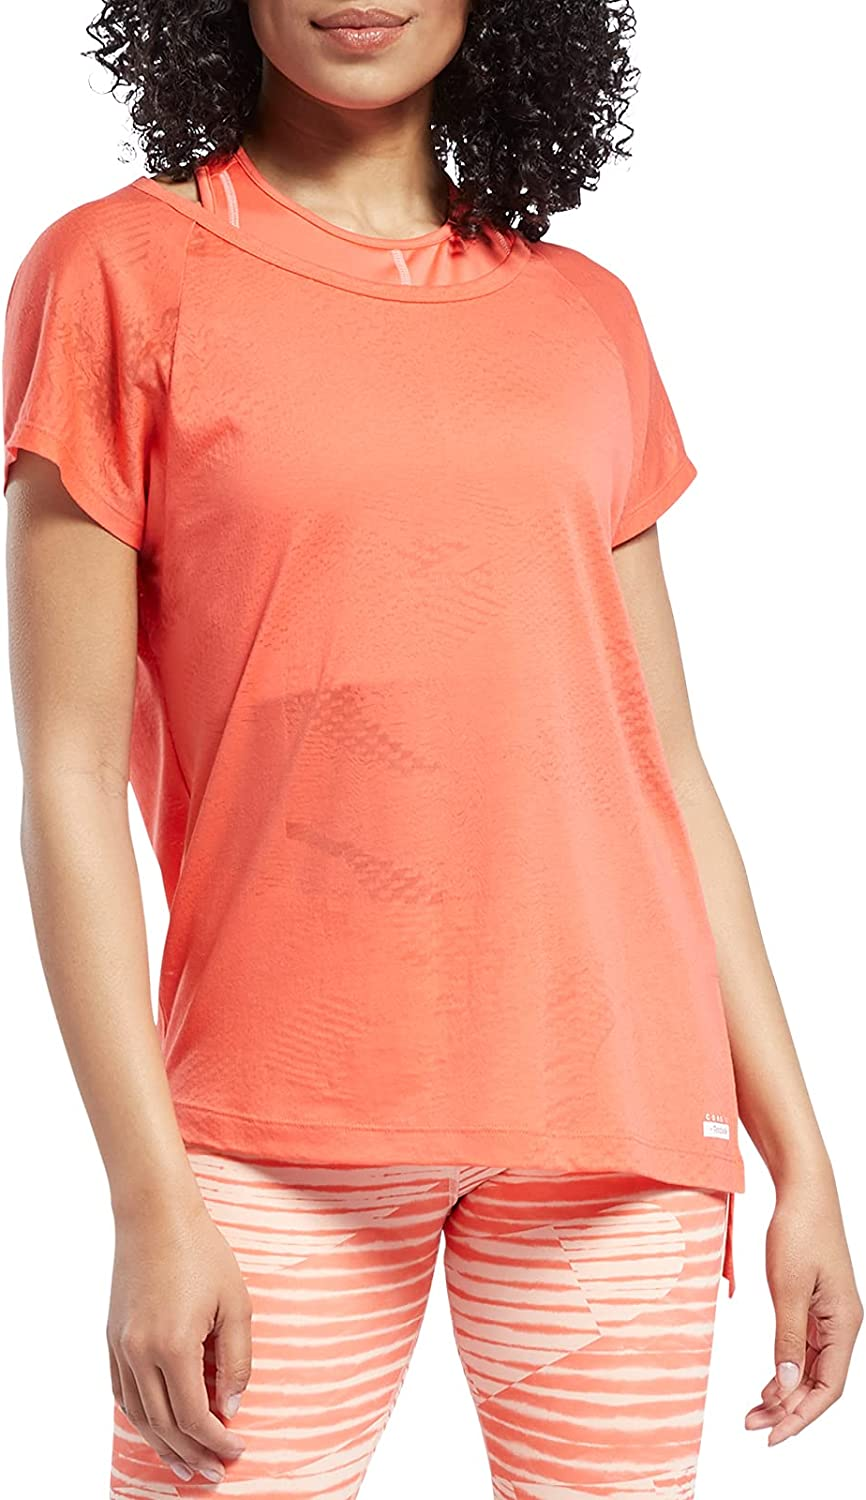 Core 10 Spring new work Sale Special Price one after another by Reebok Tee Women's Burnout Asymmetrical